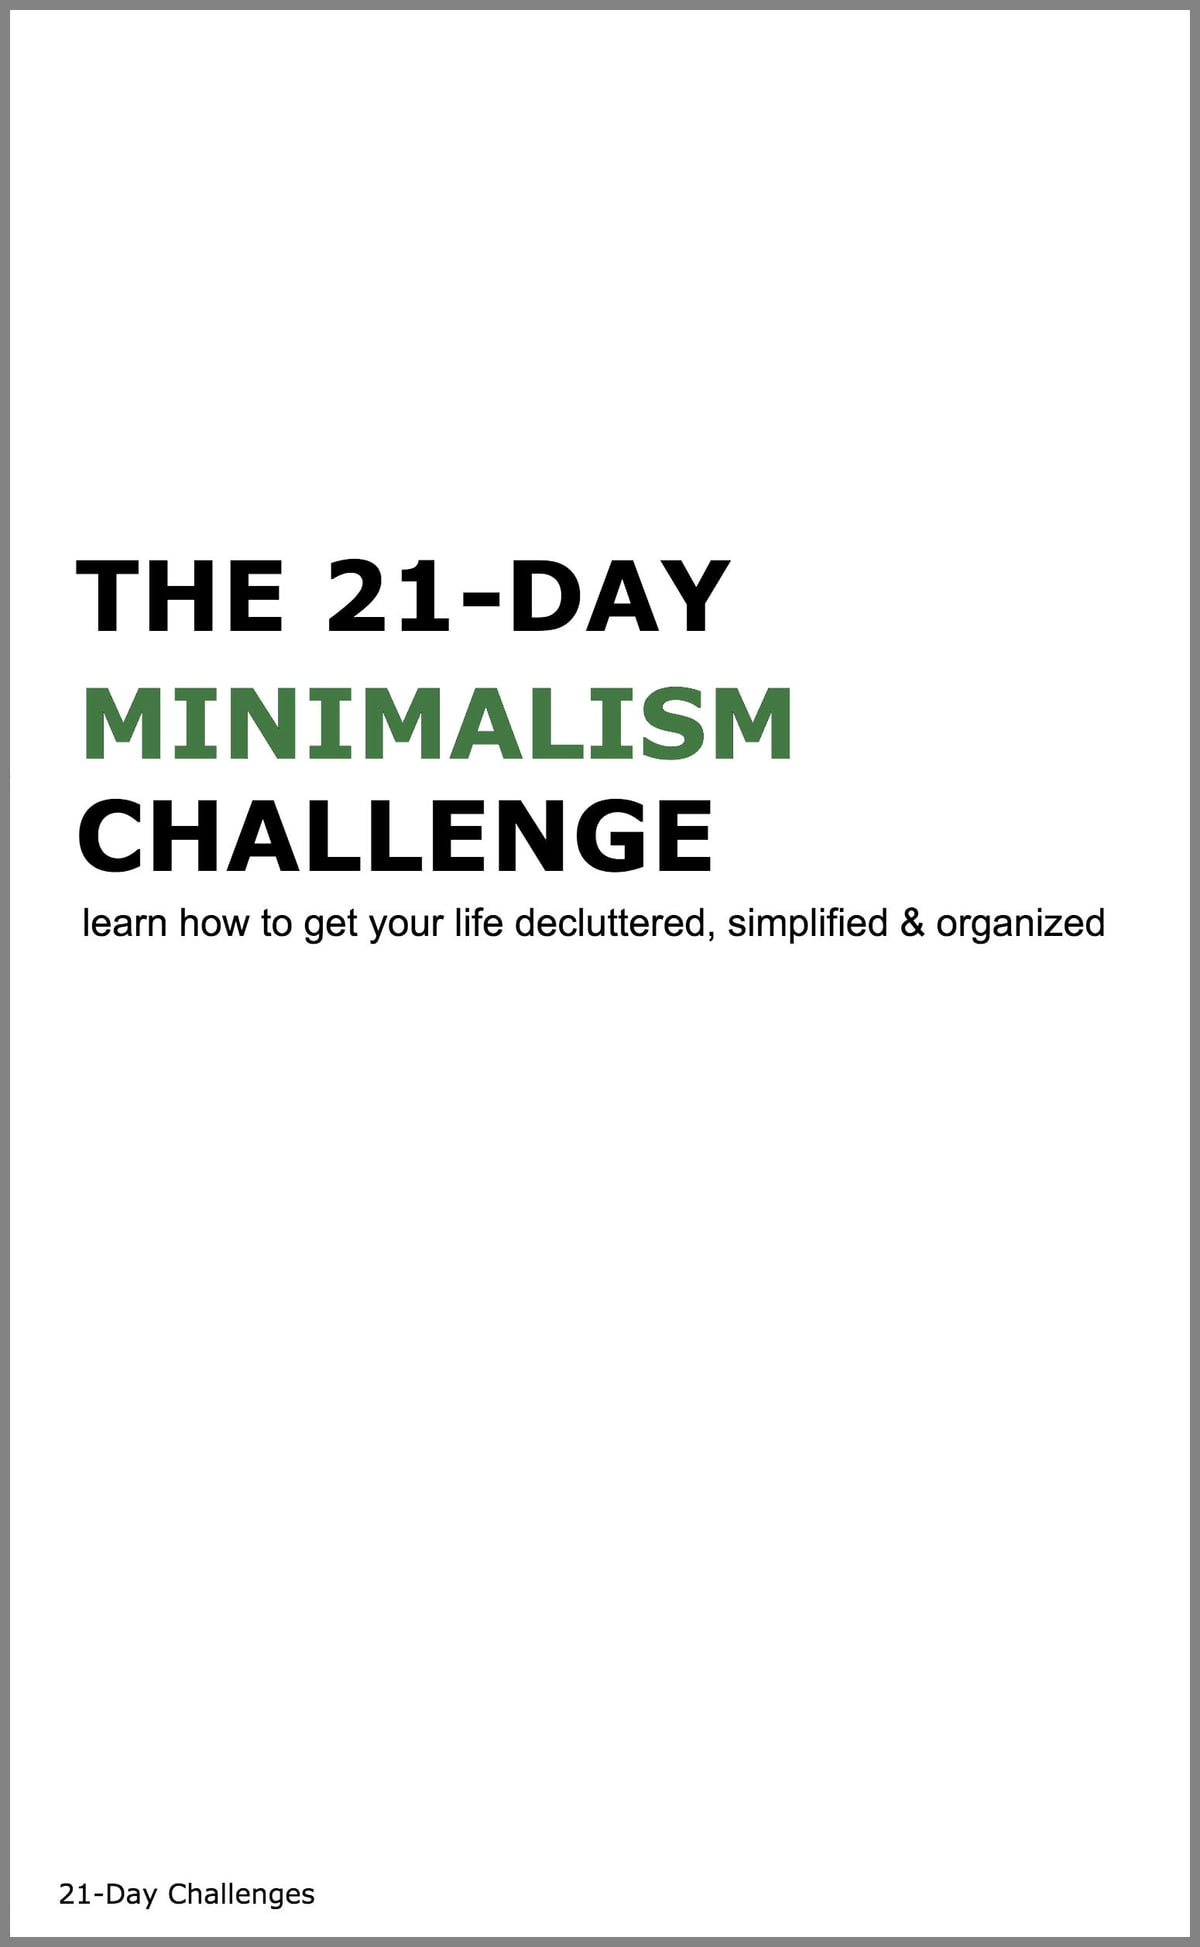 Minimalism: The 21-Day Minimalism Challenge - Learn How to Get Your Life  Decluttered, Simplified & Organized eBook by 21 Day Challenges -  9781370335541 ...